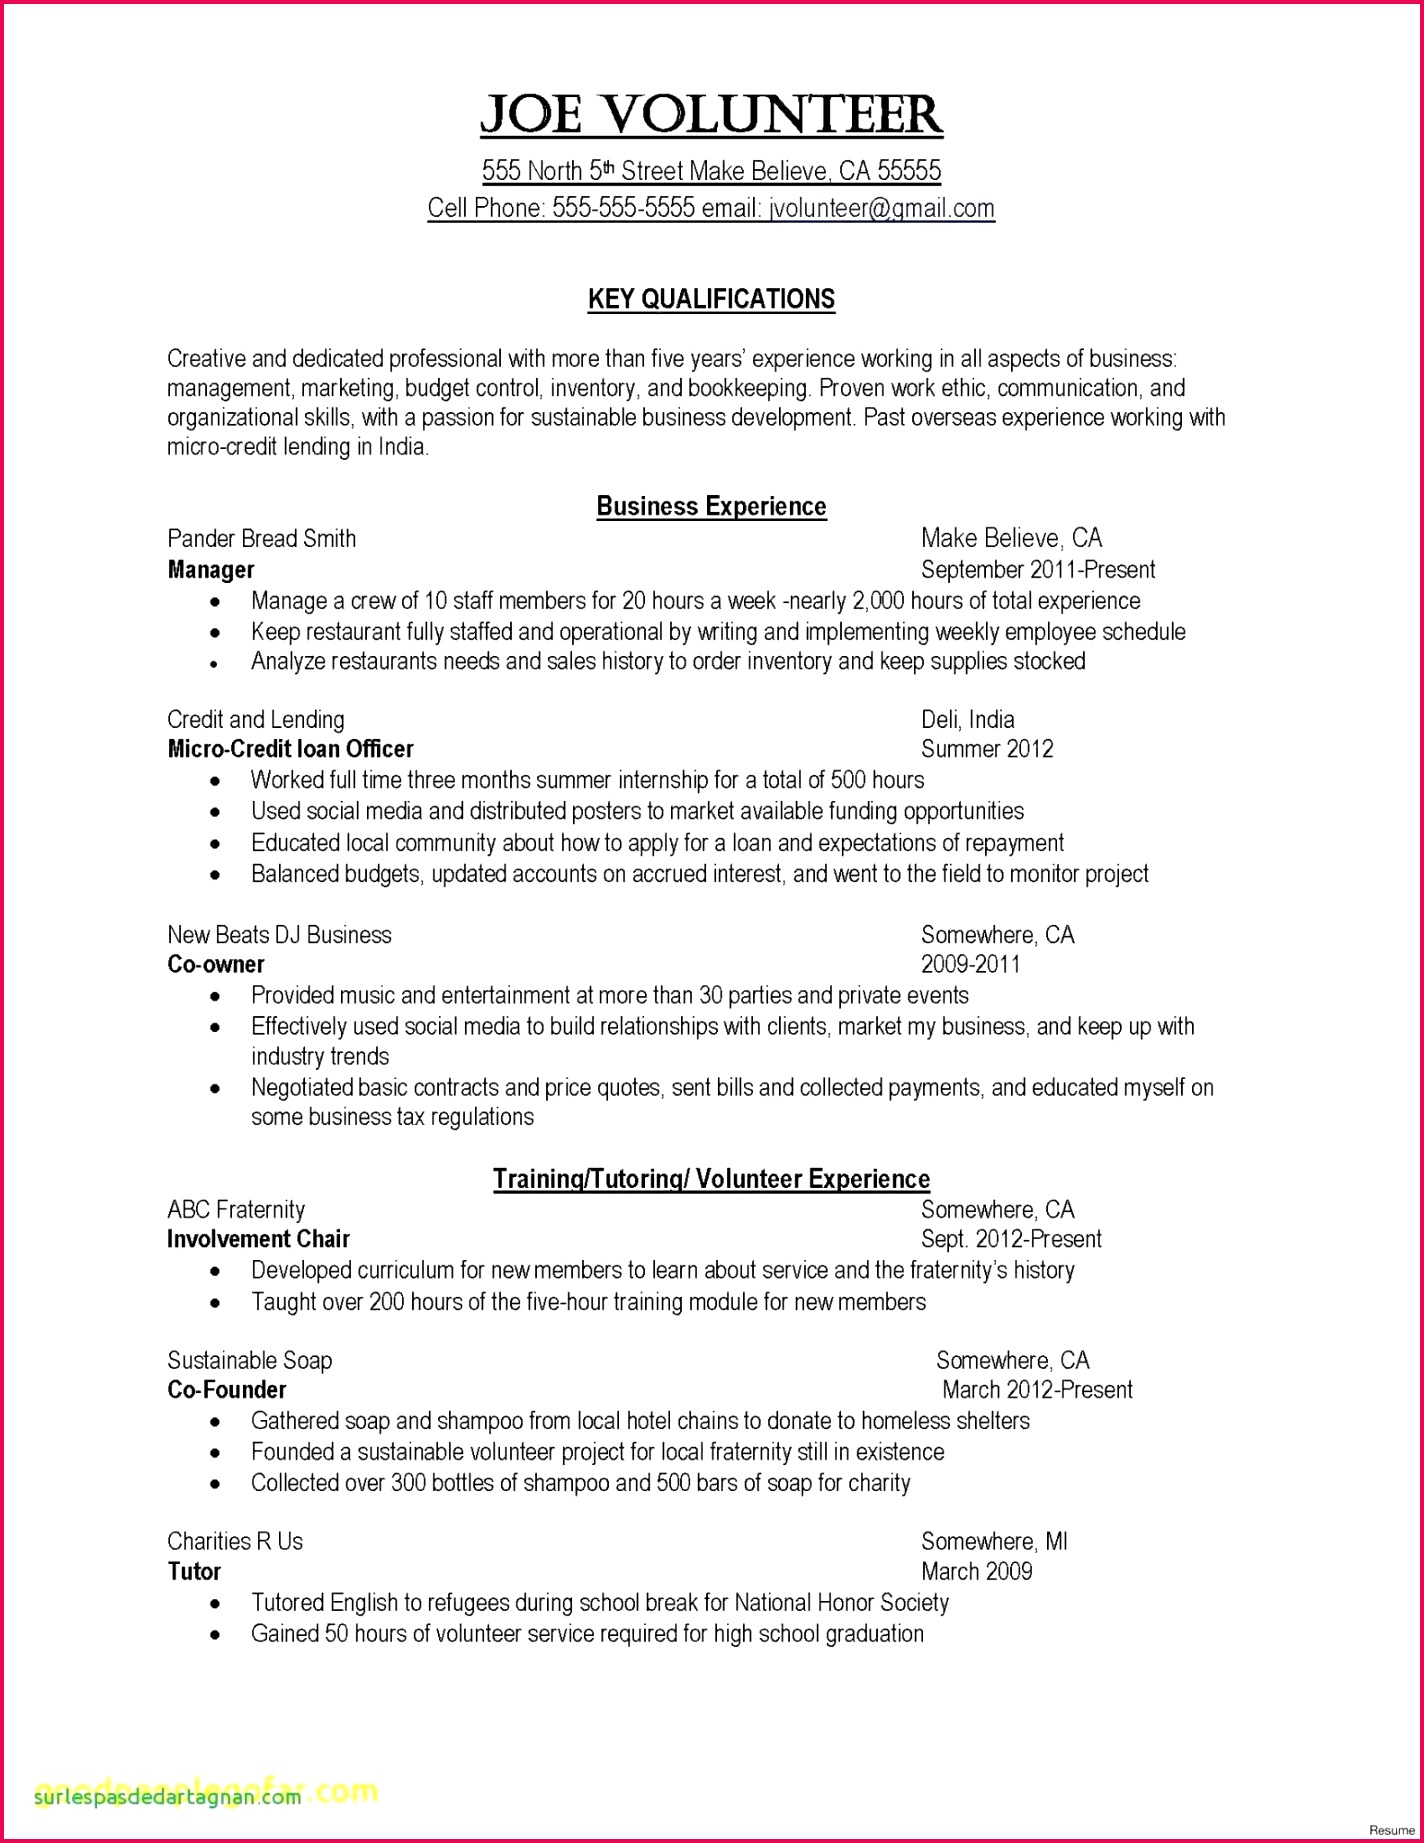 california marriage certificate template to her with 26 popular free wedding planner ideas of california marriage certificate template